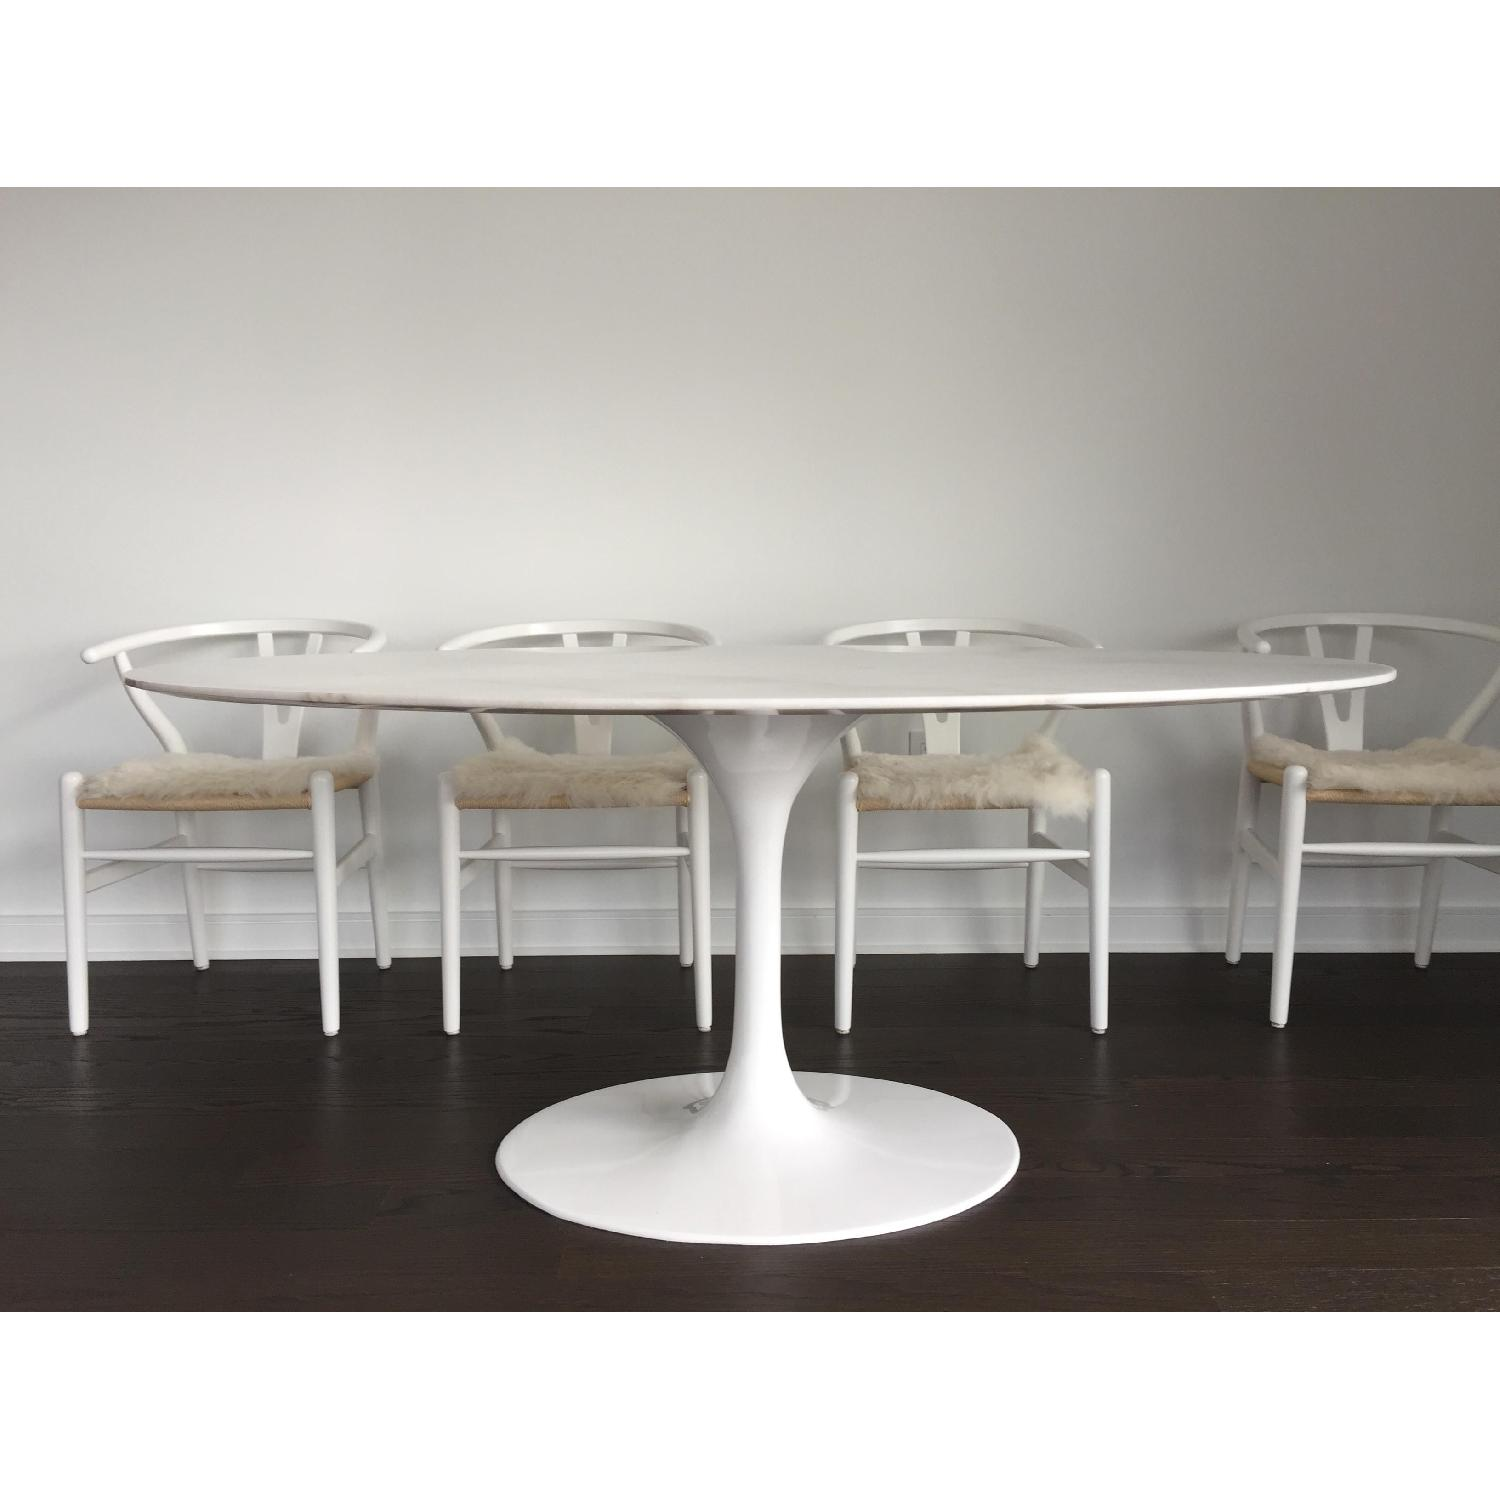 Rove Concepts Oval Tulip Table - image-3